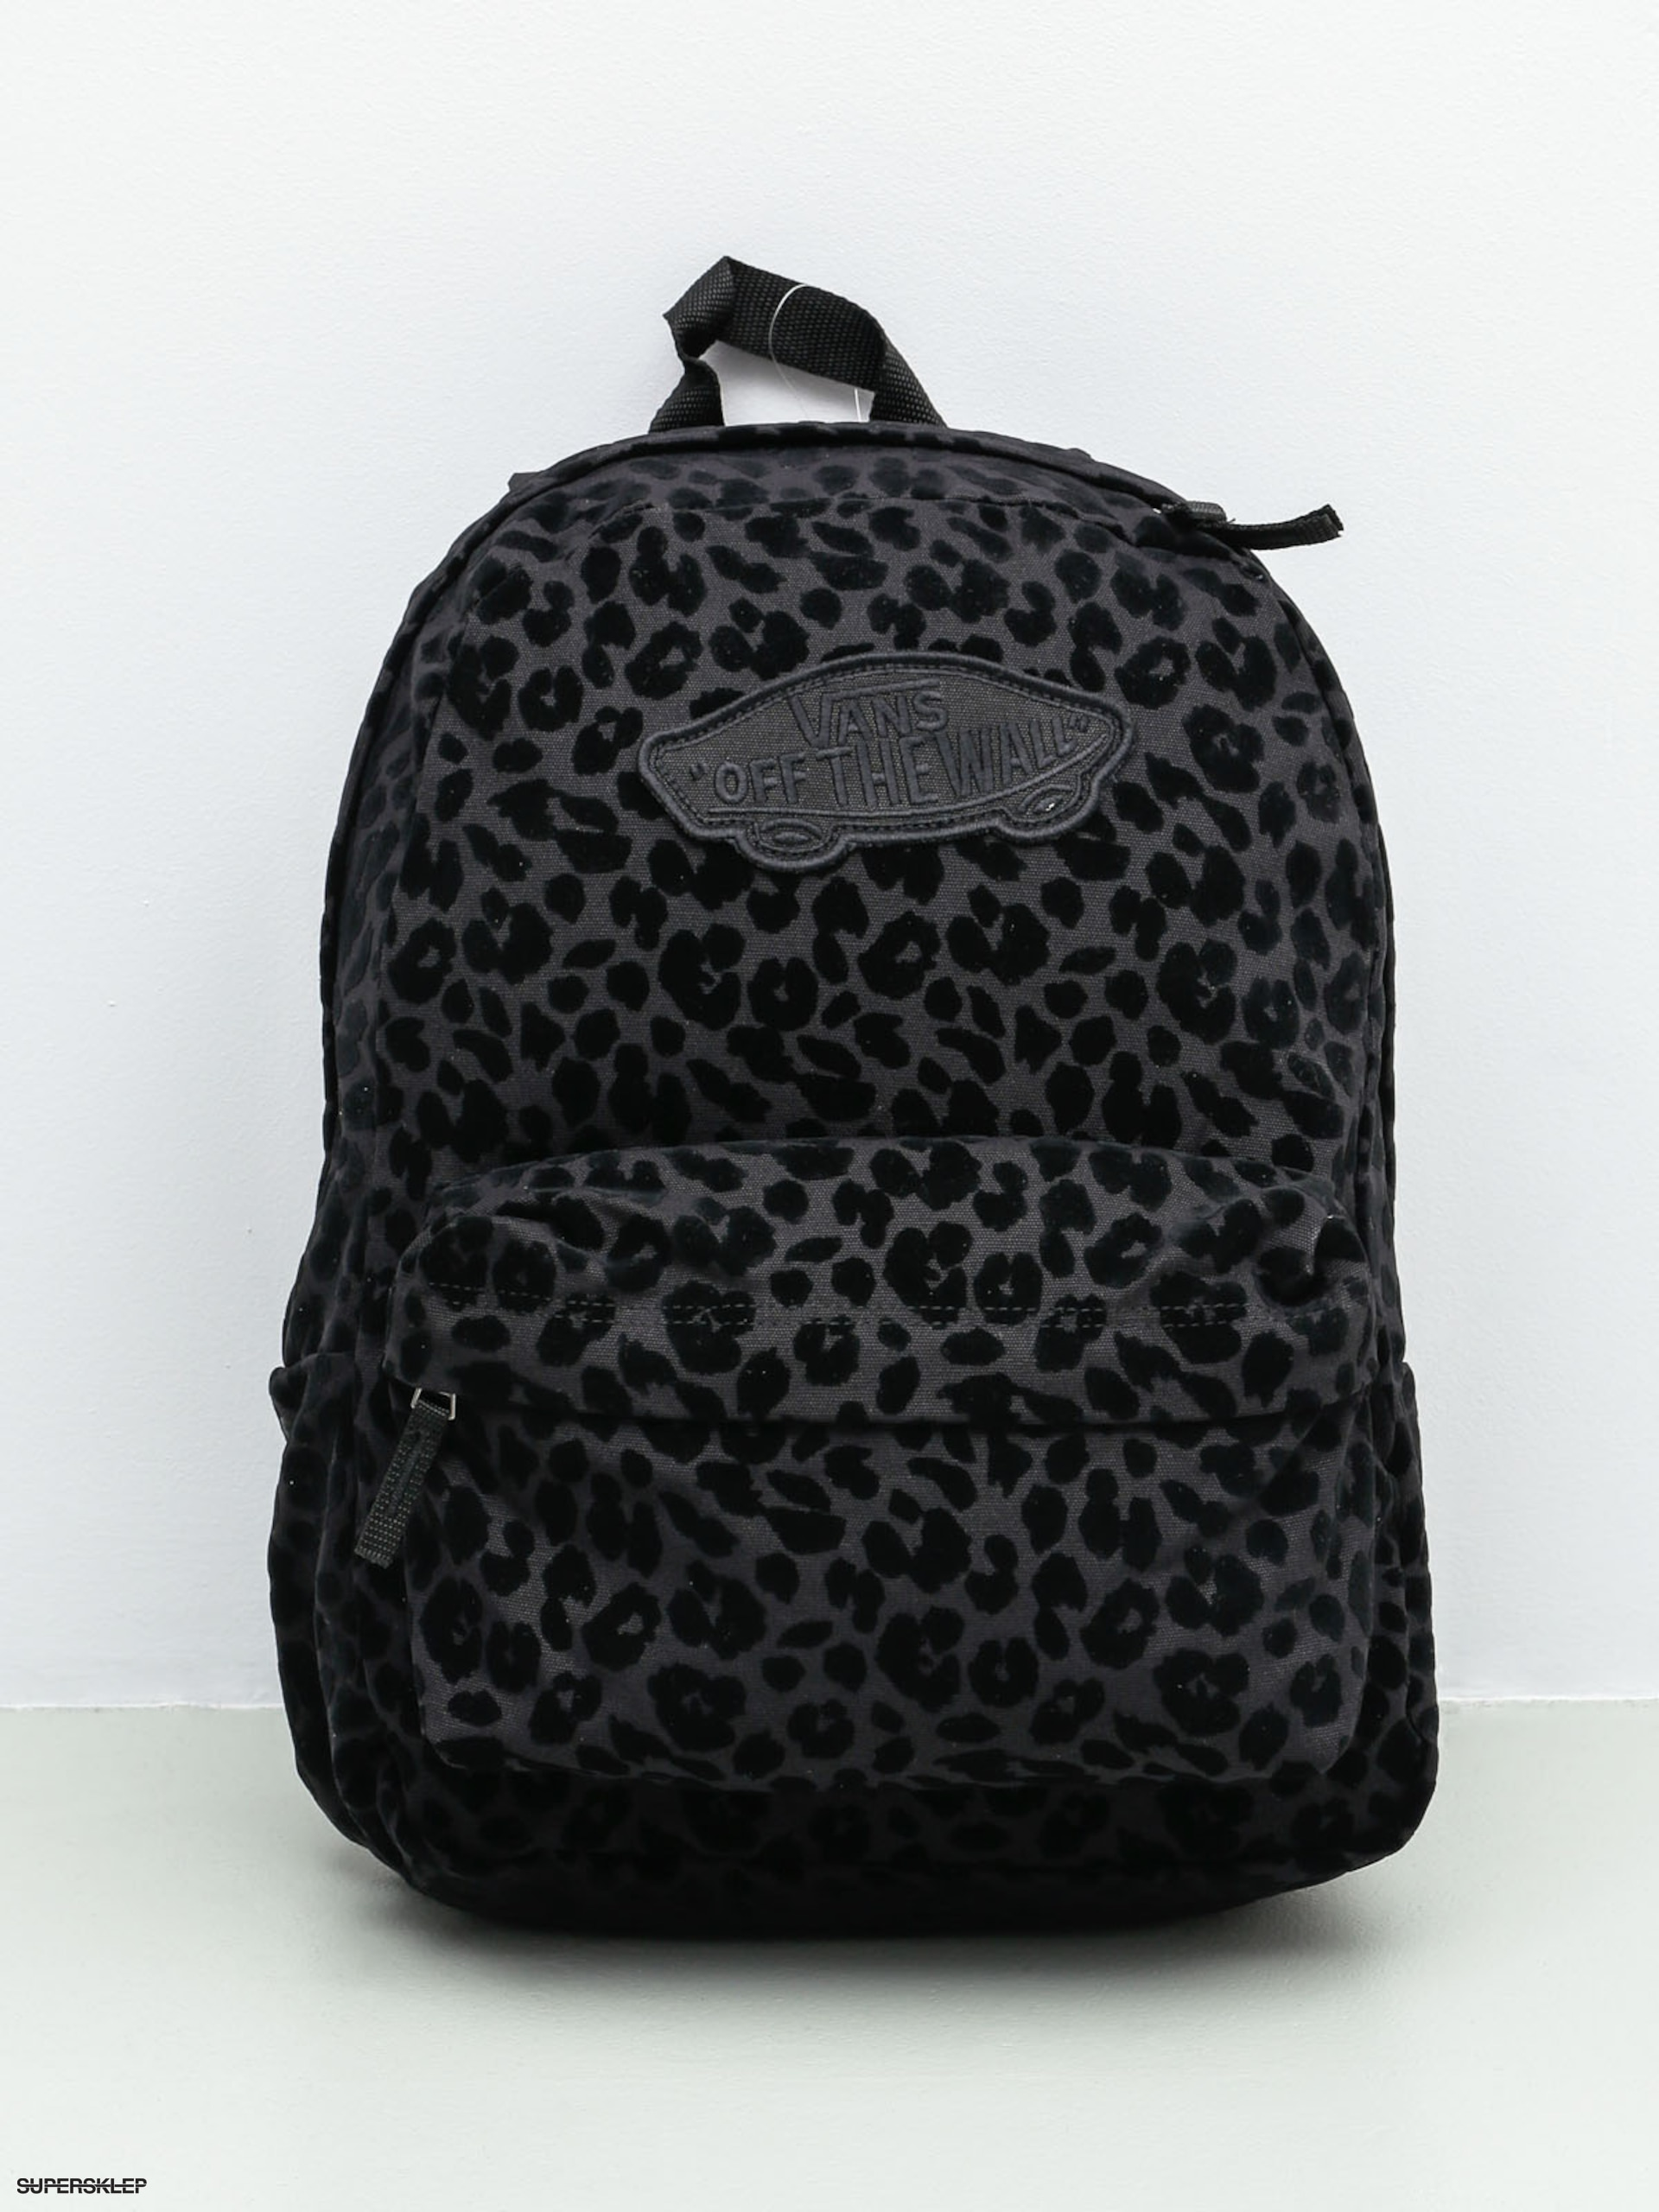 Batoh Vans Realm Backpack Wmn (black/leopar)